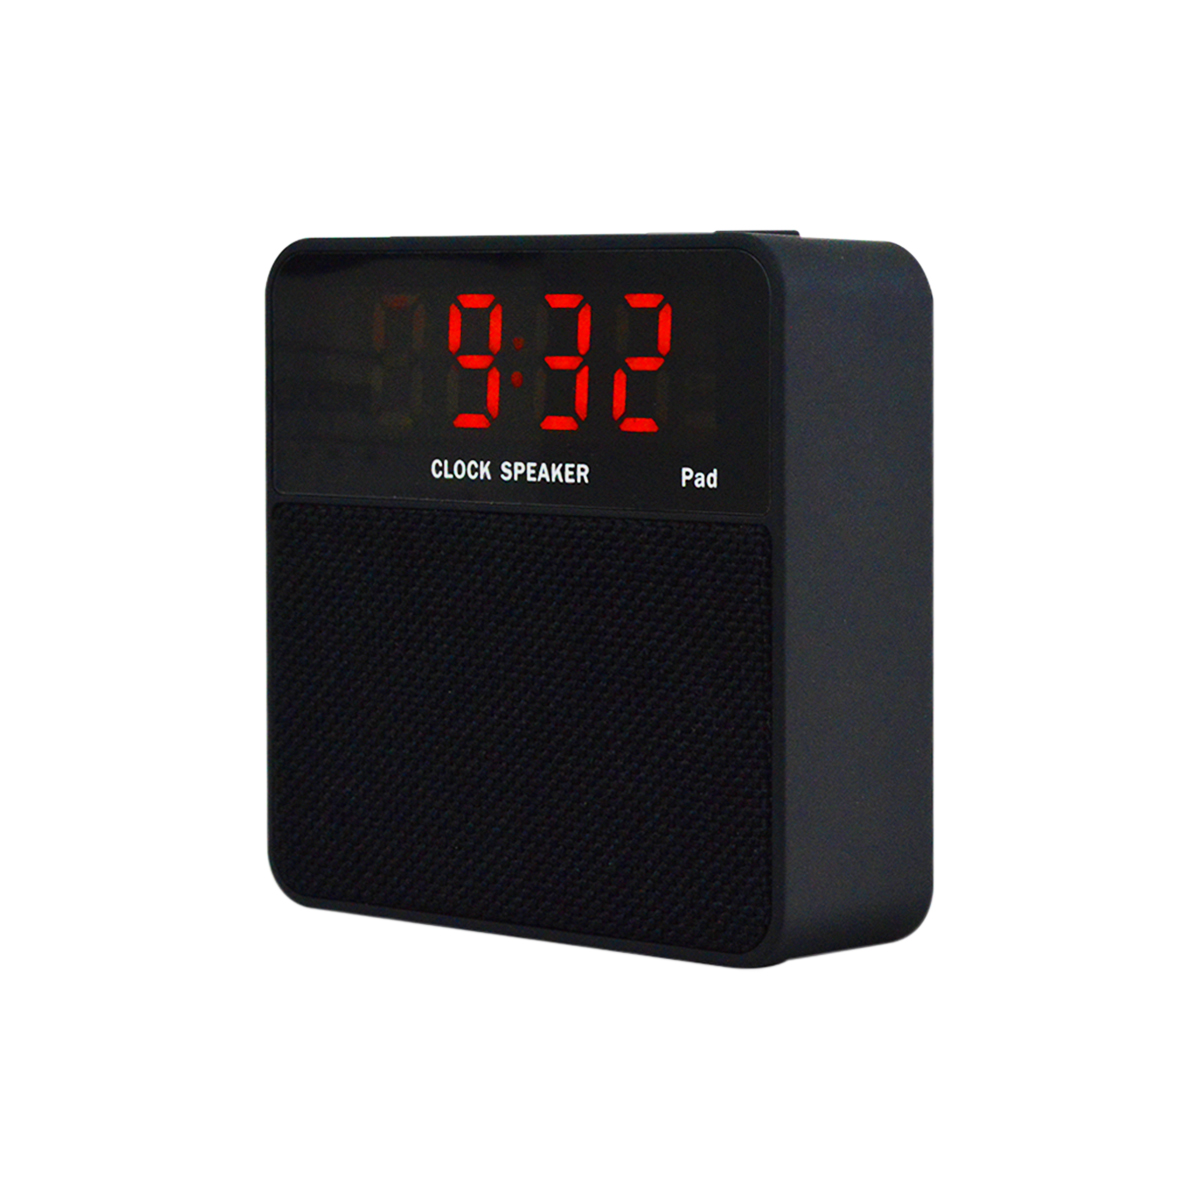 Artis BT11 WIRELESS PORTABLE BLUETOOTH SPEAKER WITH TF CARD READER/AUX IN/ ALARM CLOCK/USB